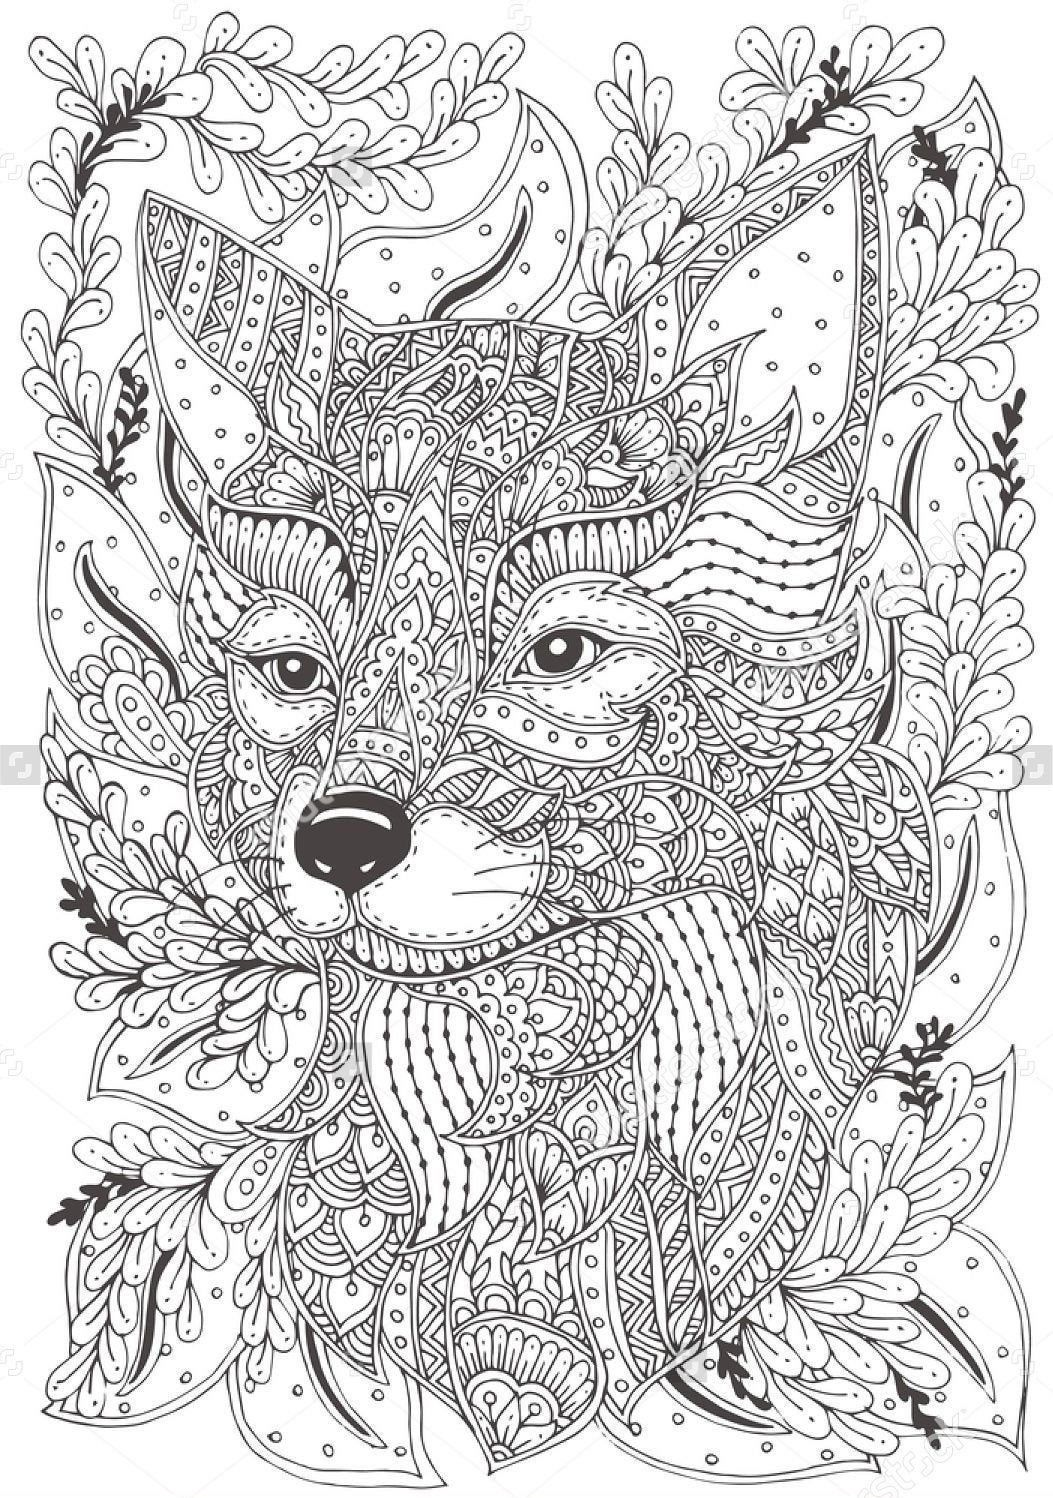 Coloring Painting Canvas 8x11 Inches Or Etsy In 2021 Animal Coloring Pages Pattern Coloring Pages Fox Coloring Page